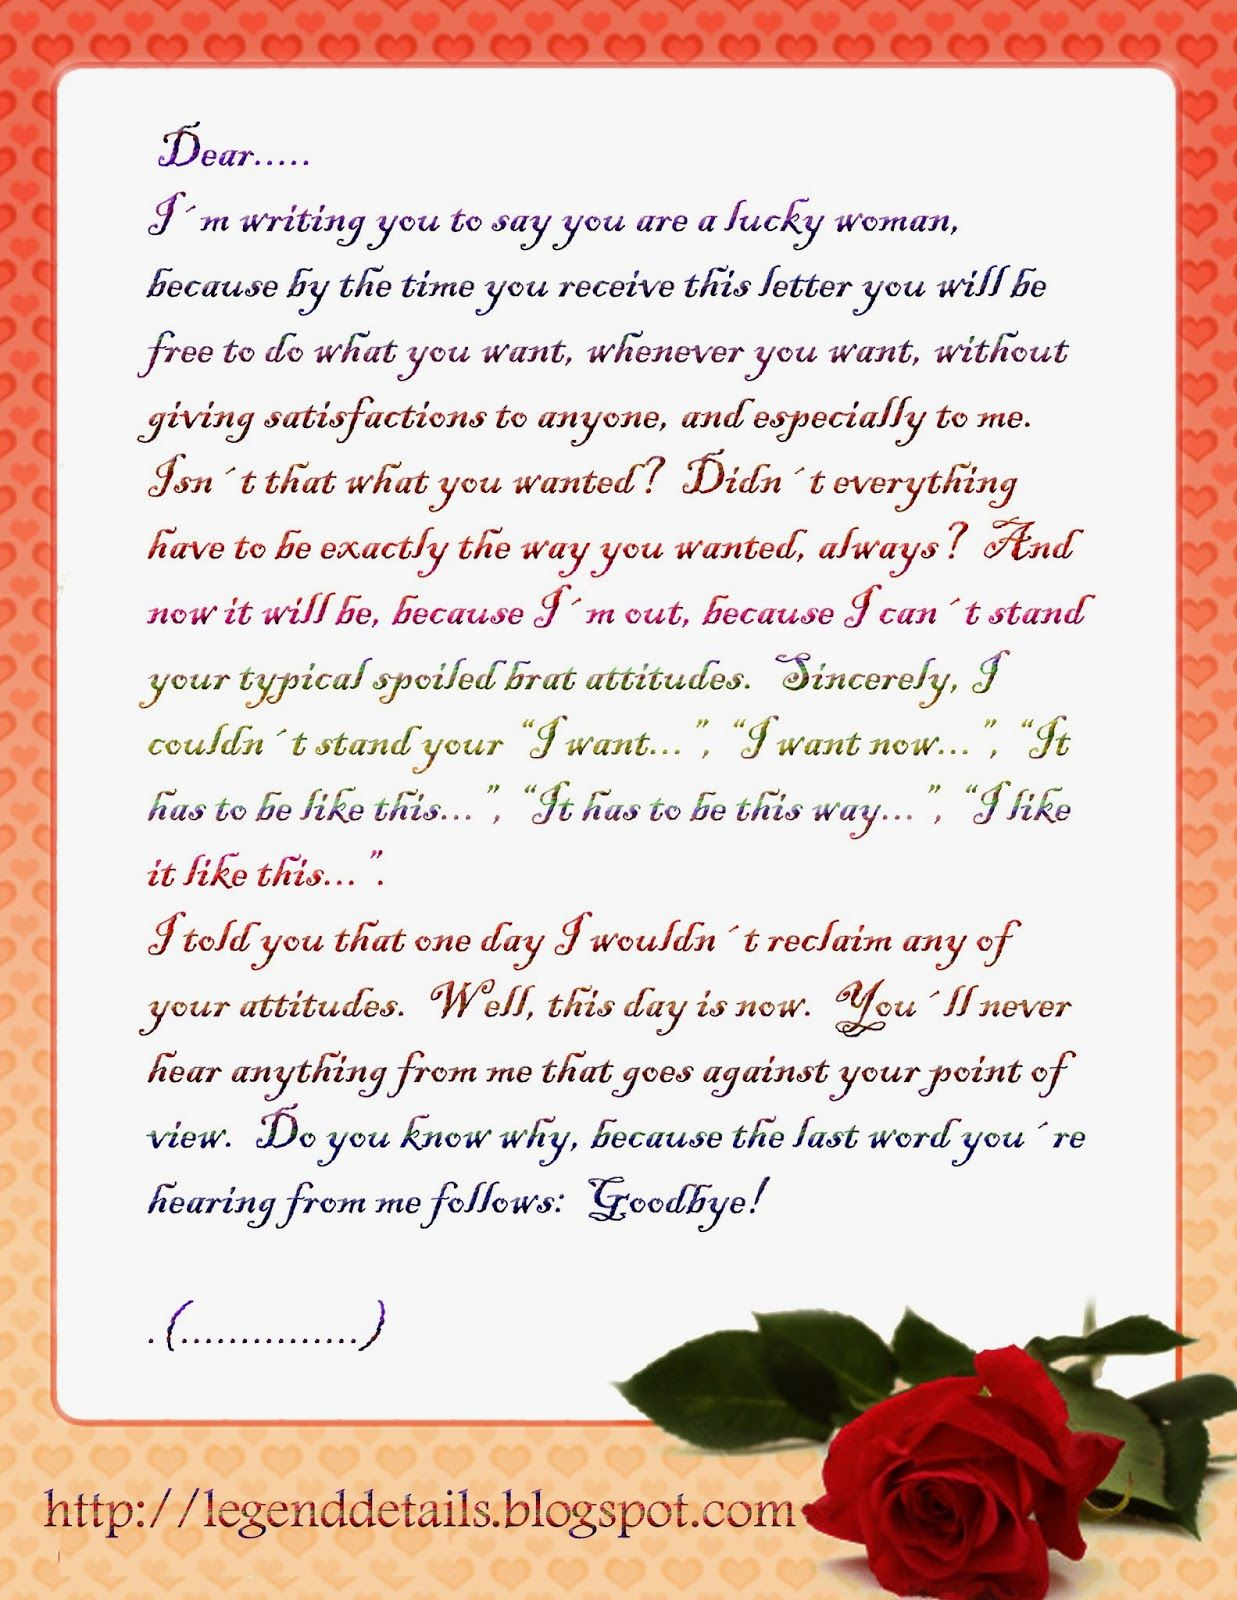 Sample of love letter for girlfriend